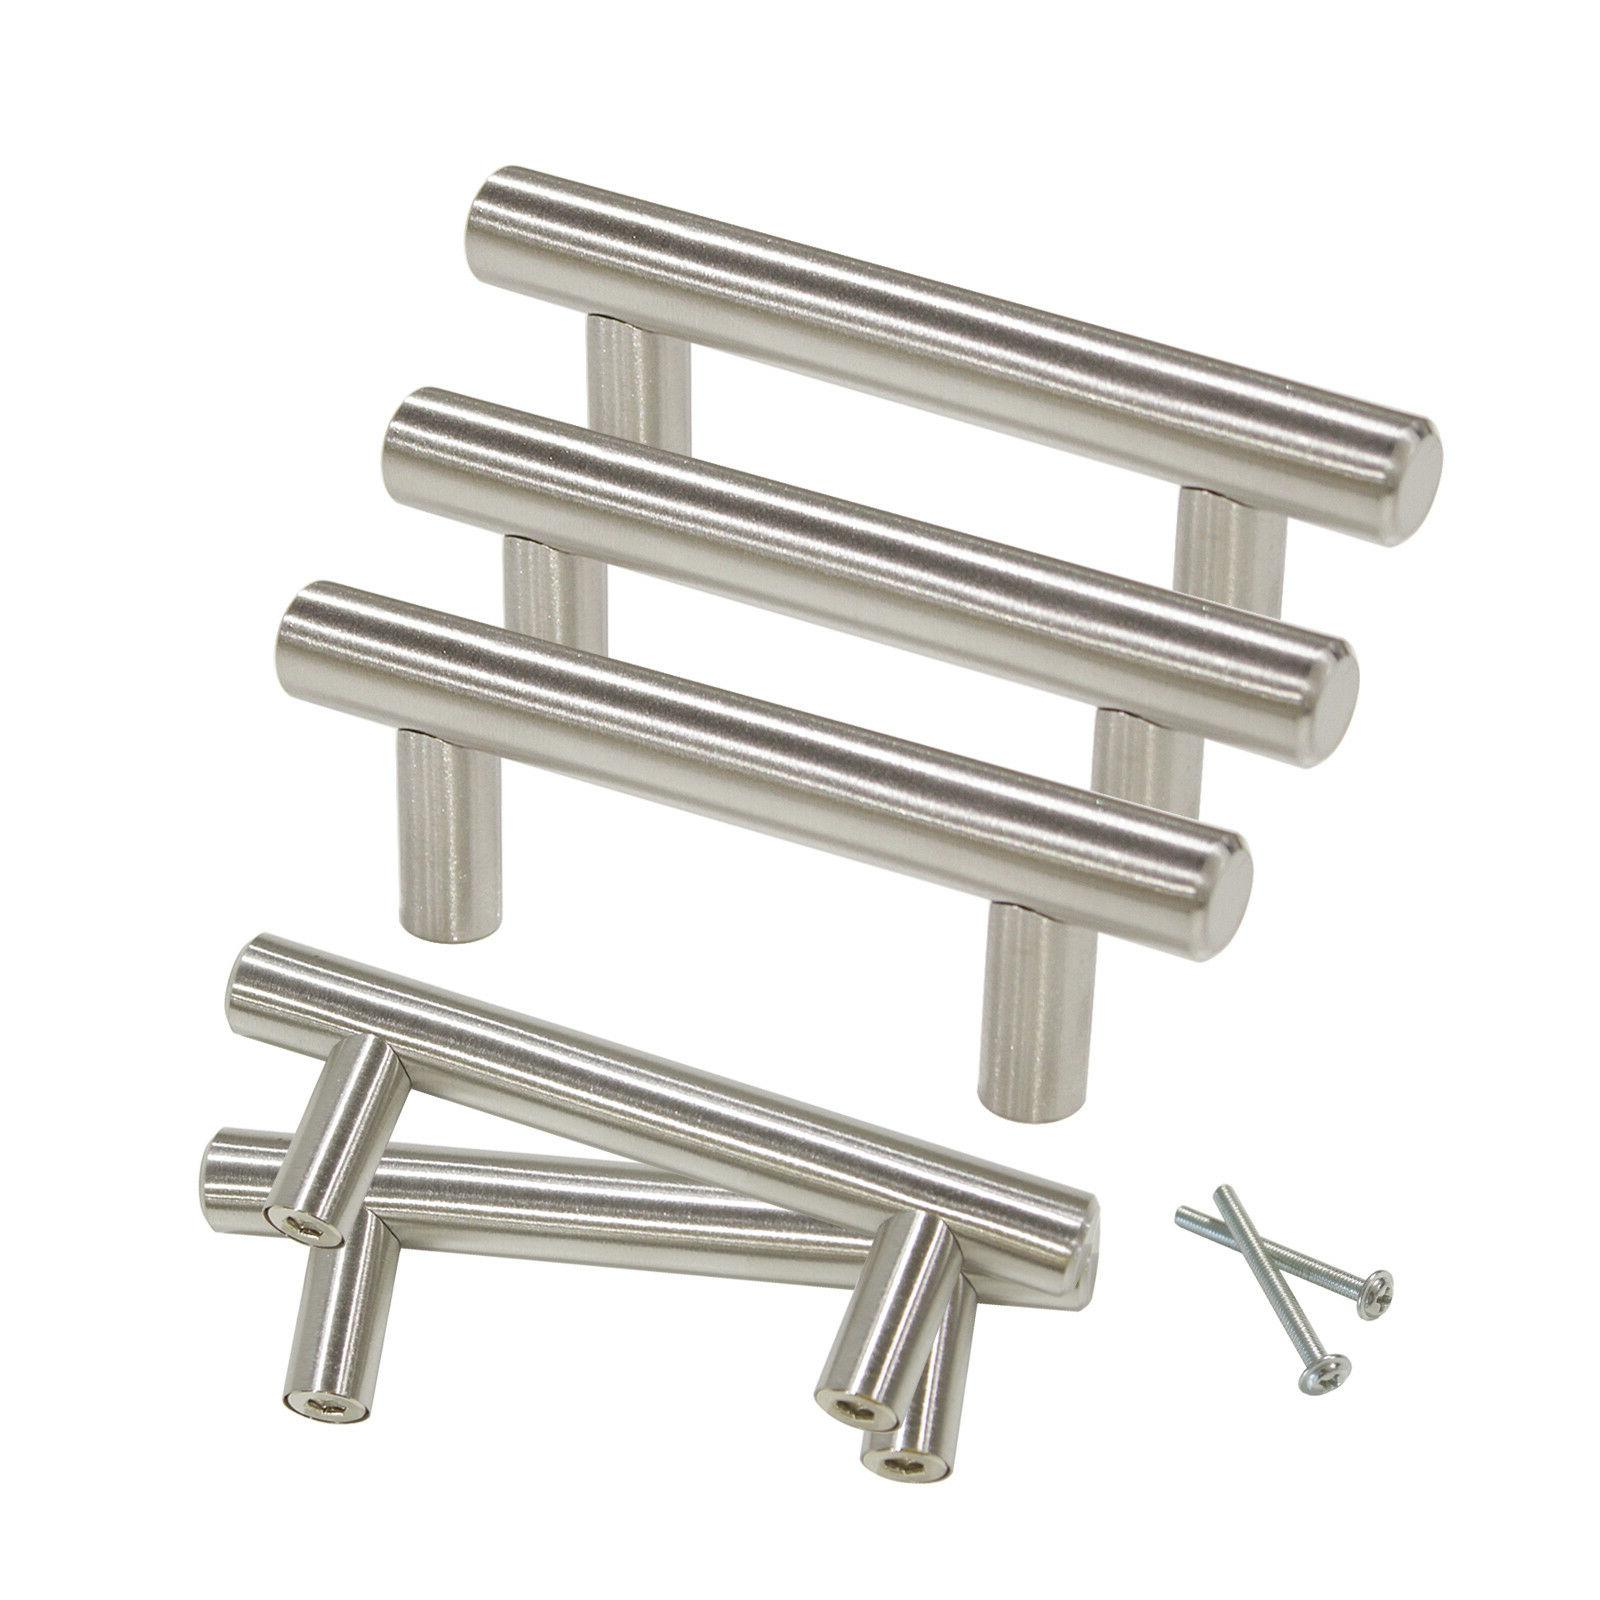 30Pack Pulls Stainless T Bar